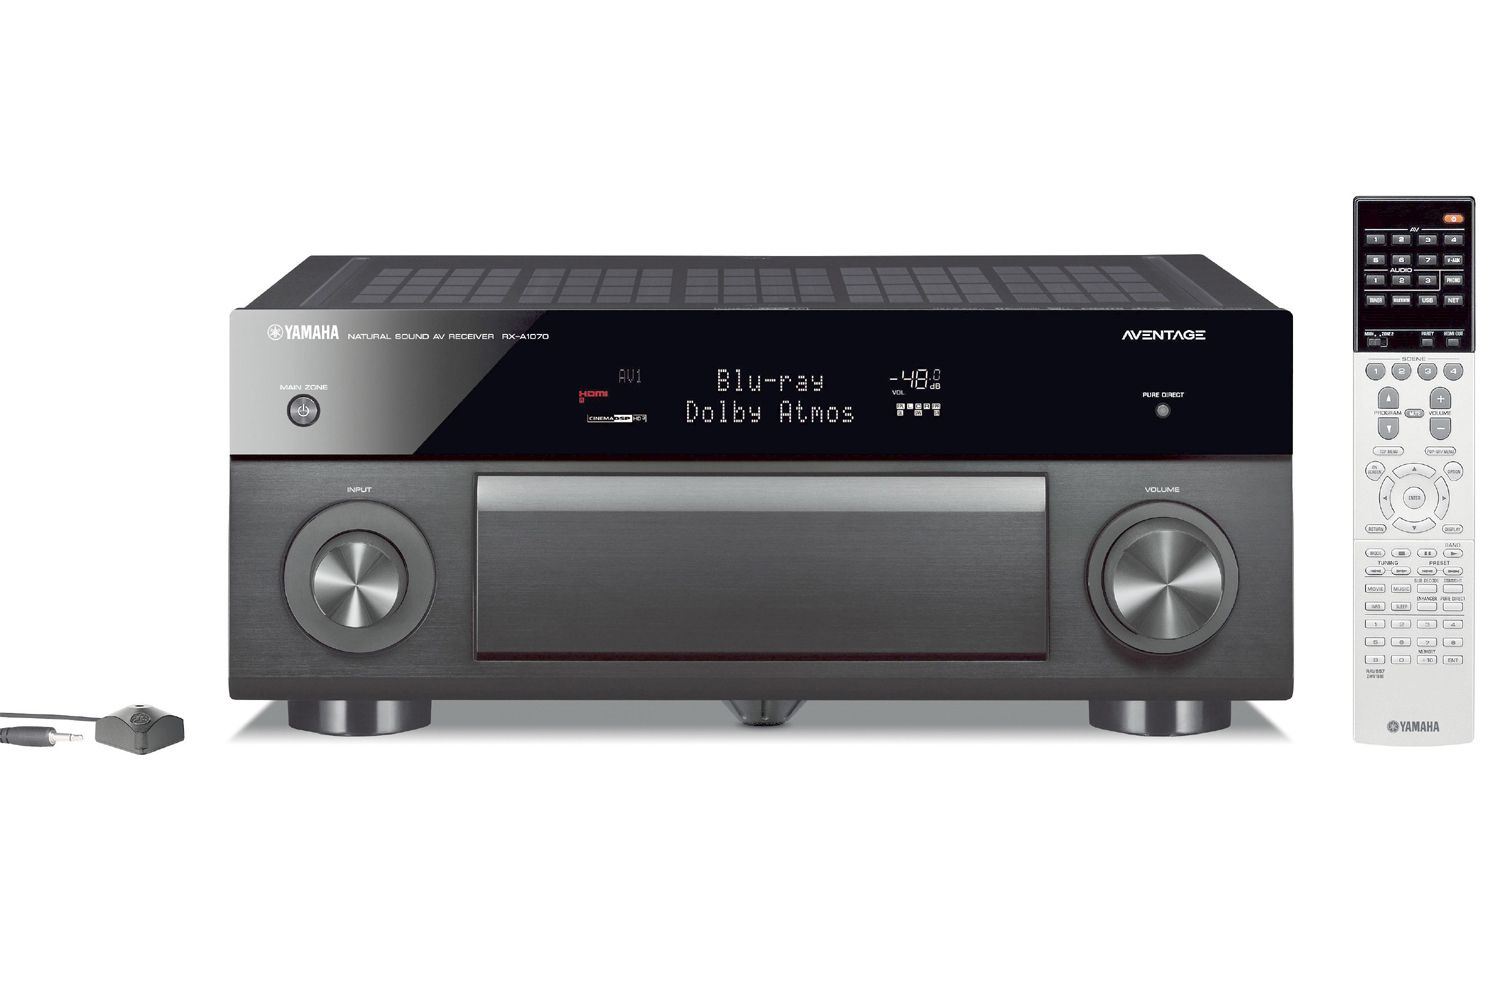 The 12 Best Mid-range Home Theater Receivers to Buy in 2018 Yamaha Home Theater System Wiring Diagram on sony home theater wiring diagram, home theater tv wiring diagram, home theater subwoofer wiring diagram,